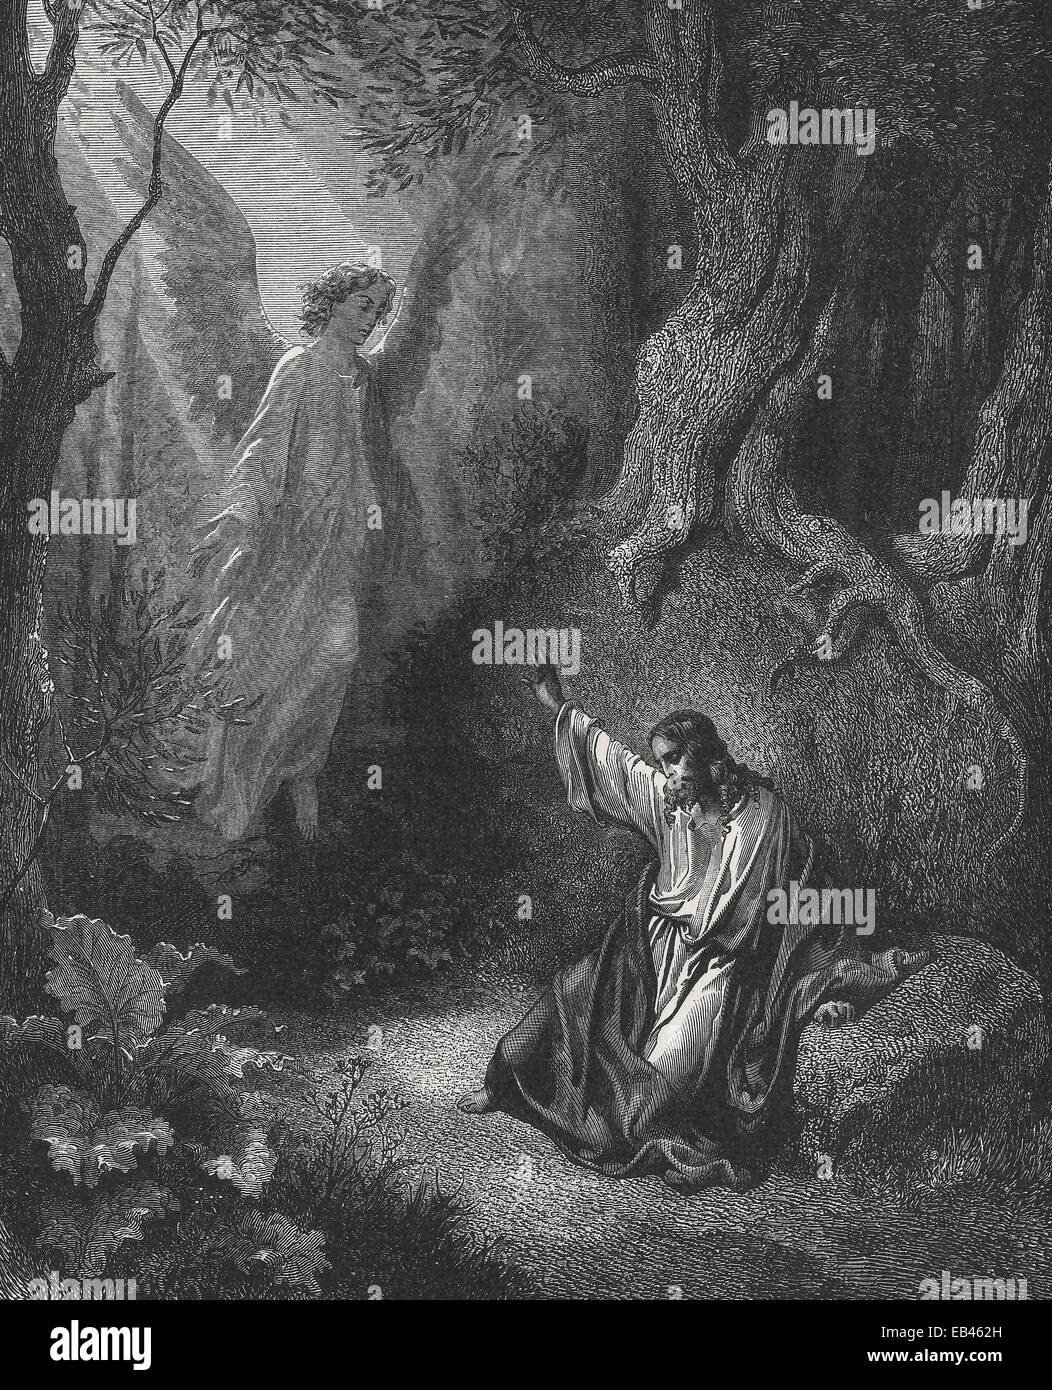 Jesus Agony In The Garden Of Gethsemane Stock Photo Royalty Free Image 75695273 Alamy